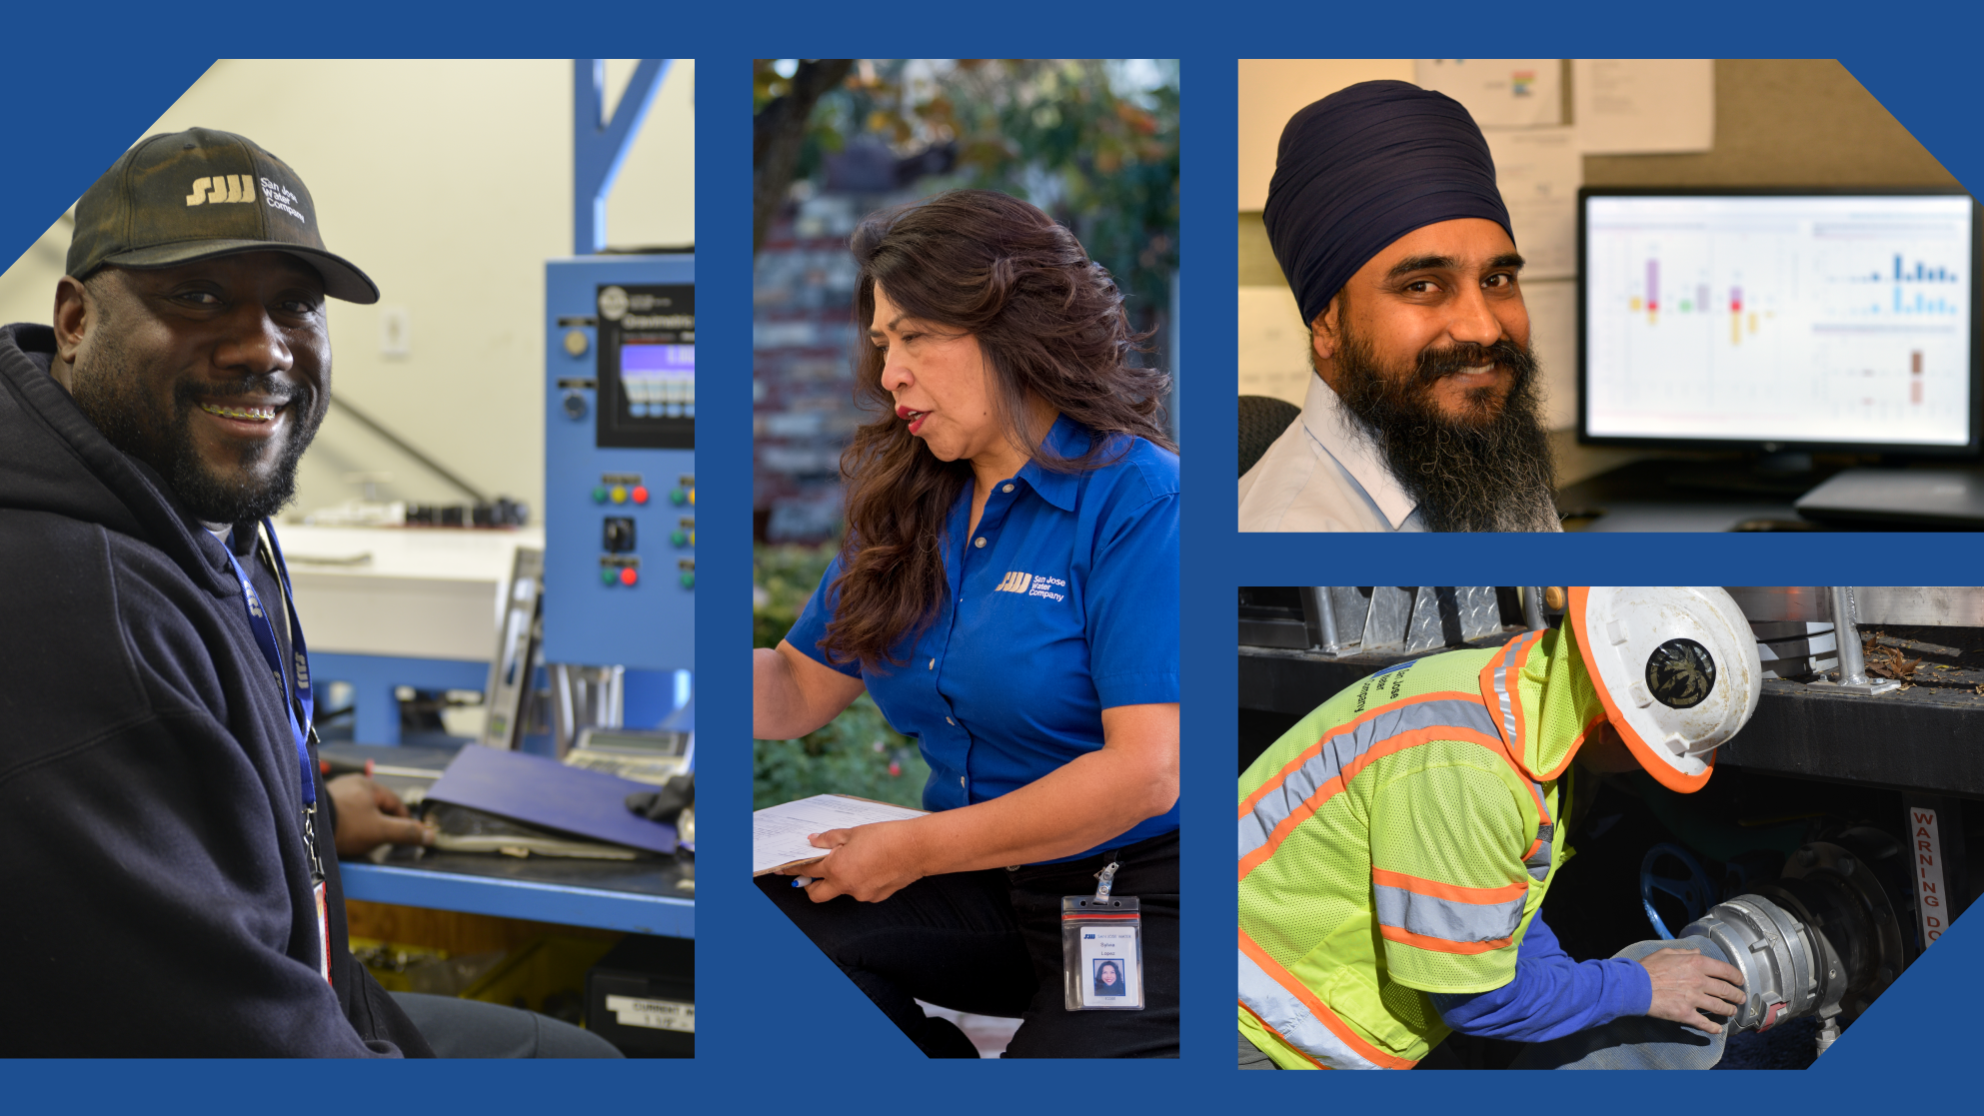 Collage of San Jose Water employees smiling while on the job.